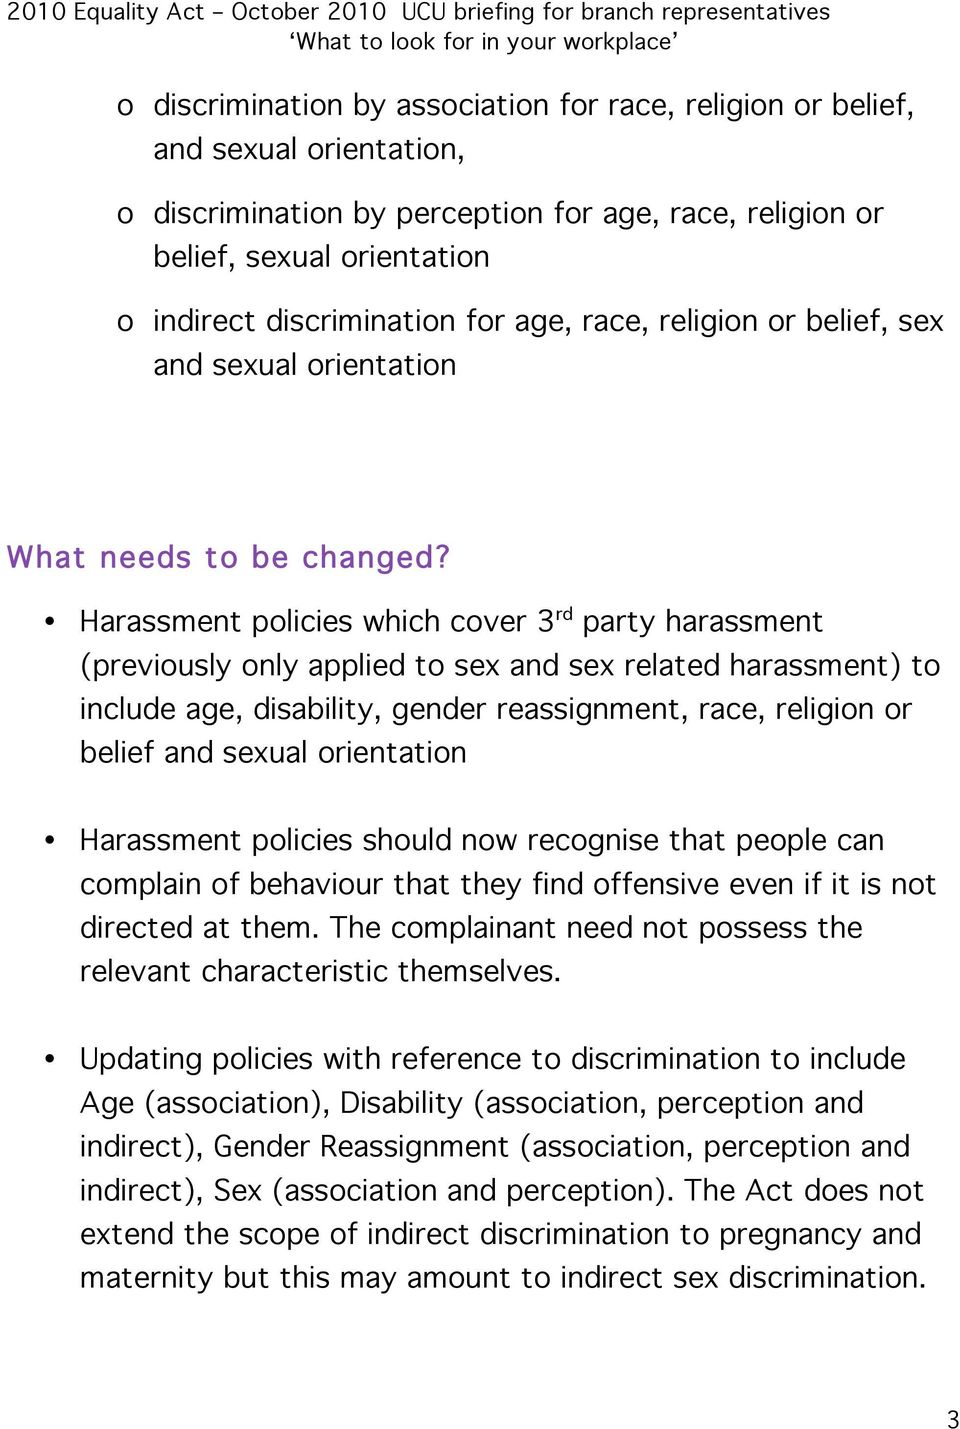 Harassment policies which cover 3 rd party harassment (previously only applied to sex and sex related harassment) to include age, disability, gender reassignment, race, religion or belief and sexual